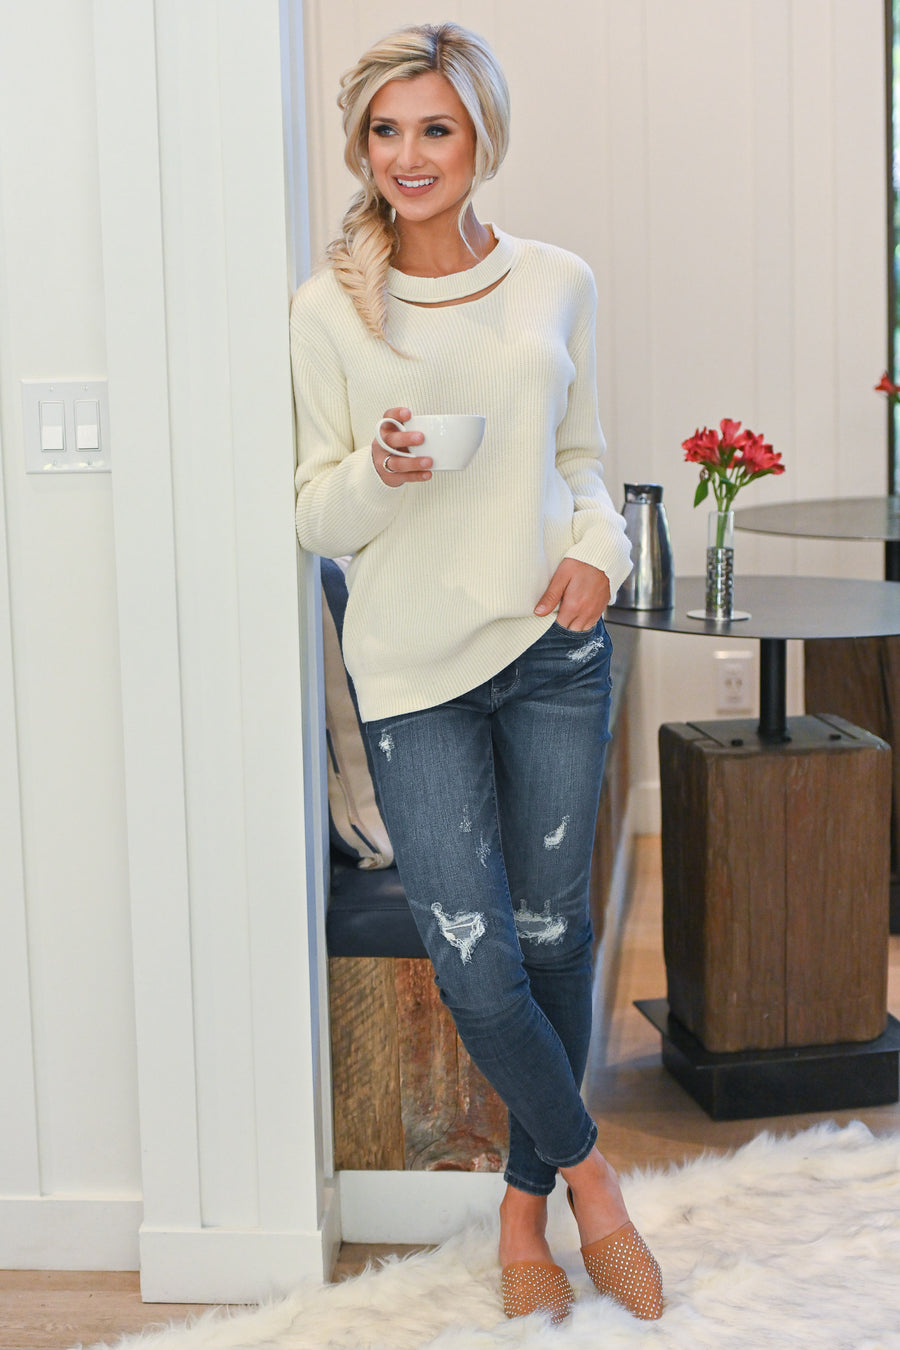 Feels Just Right Sweater - Ivory women's chunky sweater with neckline cutout, closet candy boutique 1